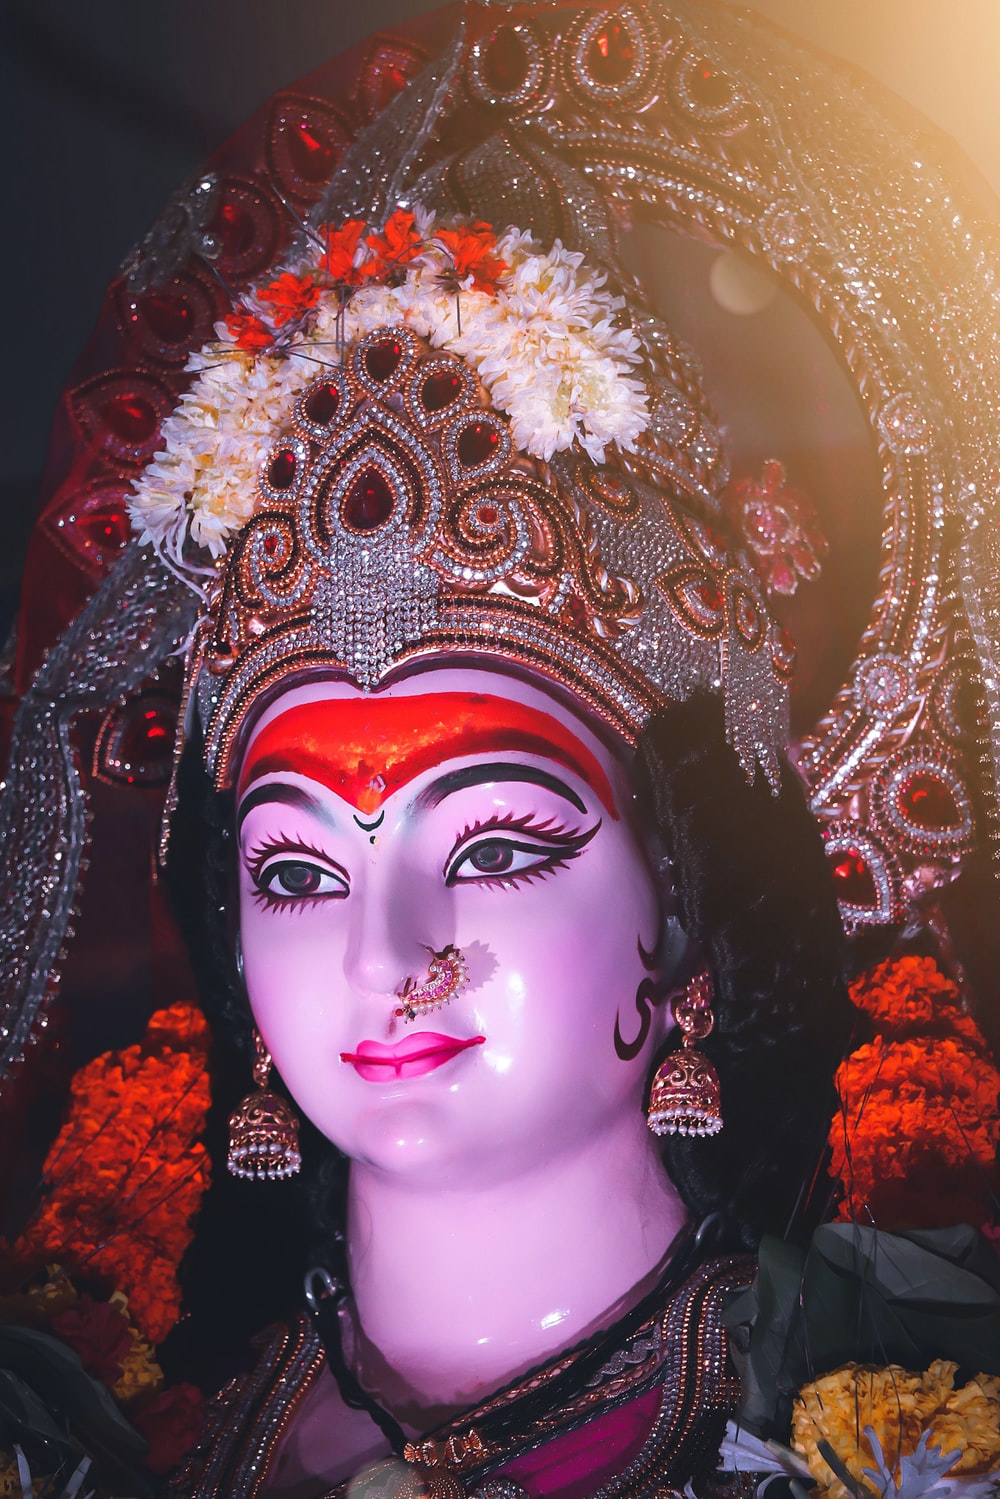 1000 Durga Maa Pictures Download Free Images On Unsplash